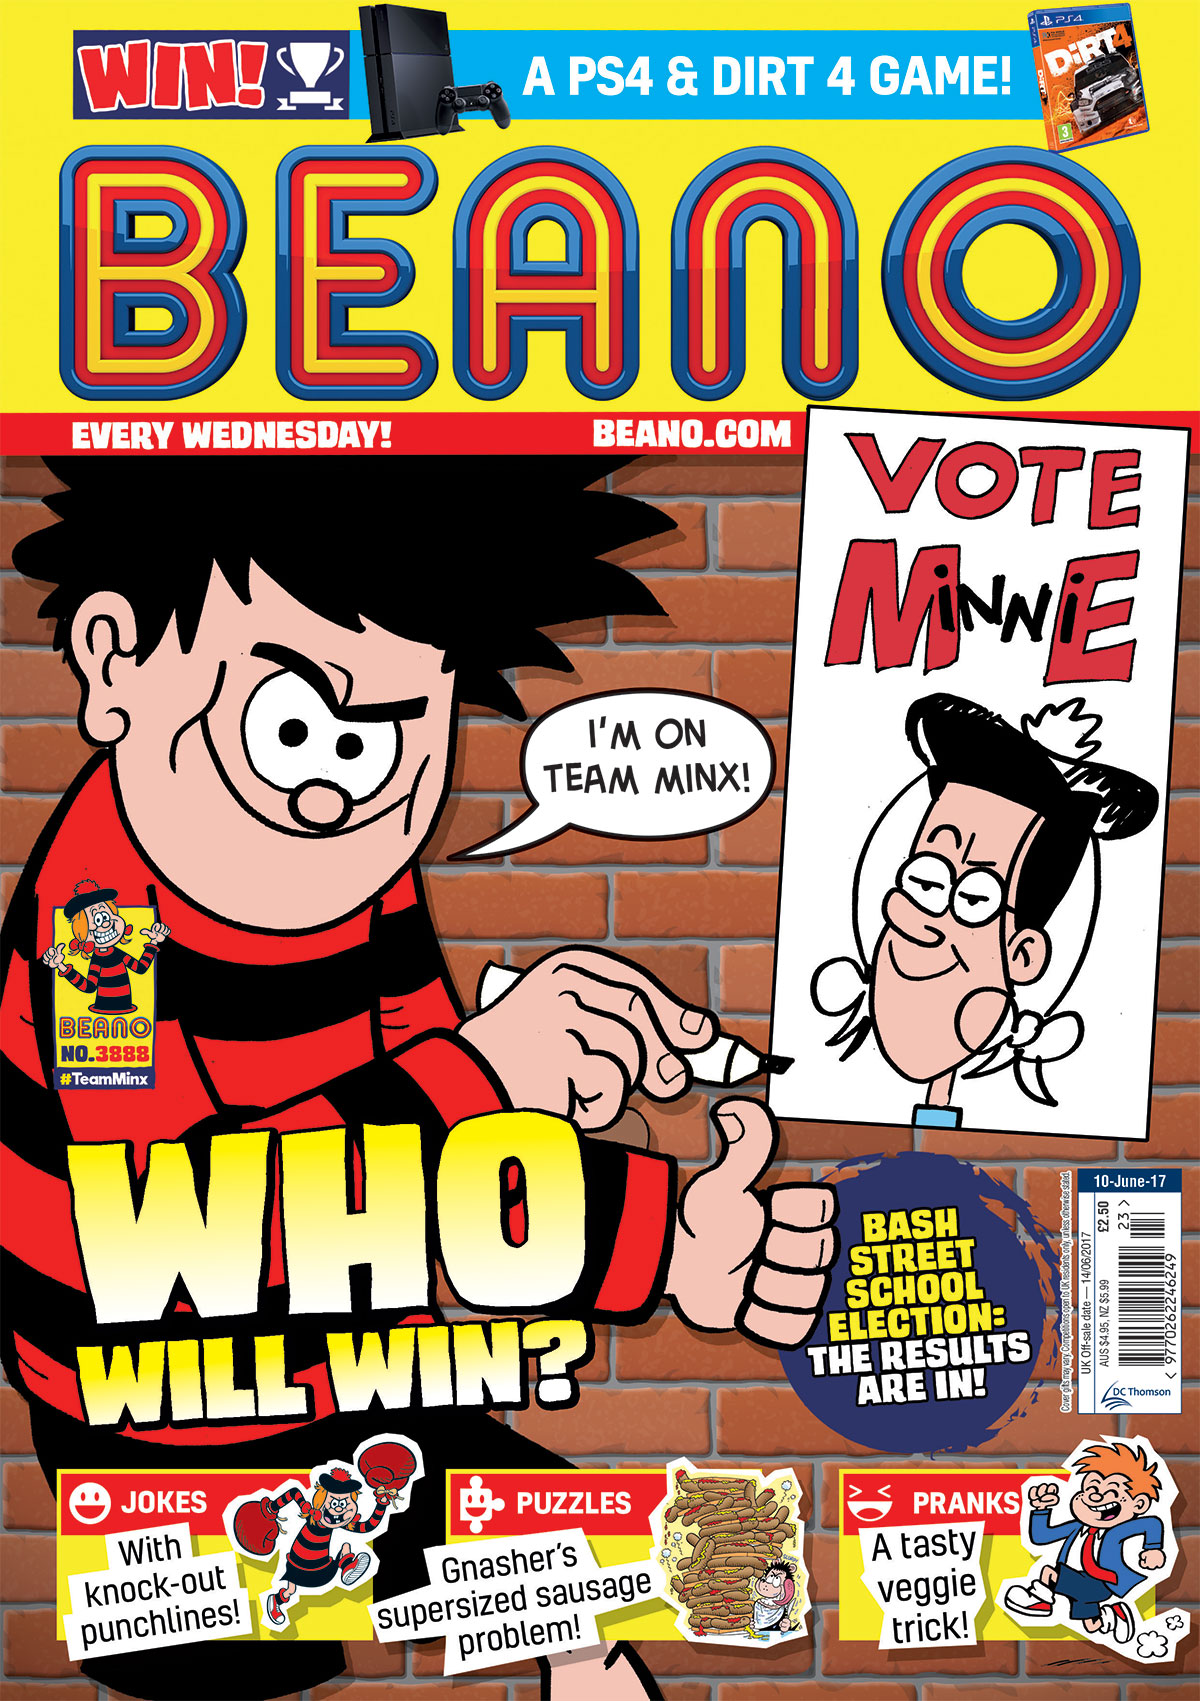 Beano No. 3888, June 10th 2017, Dennis the Menace and Gnasher, election, Bash Street